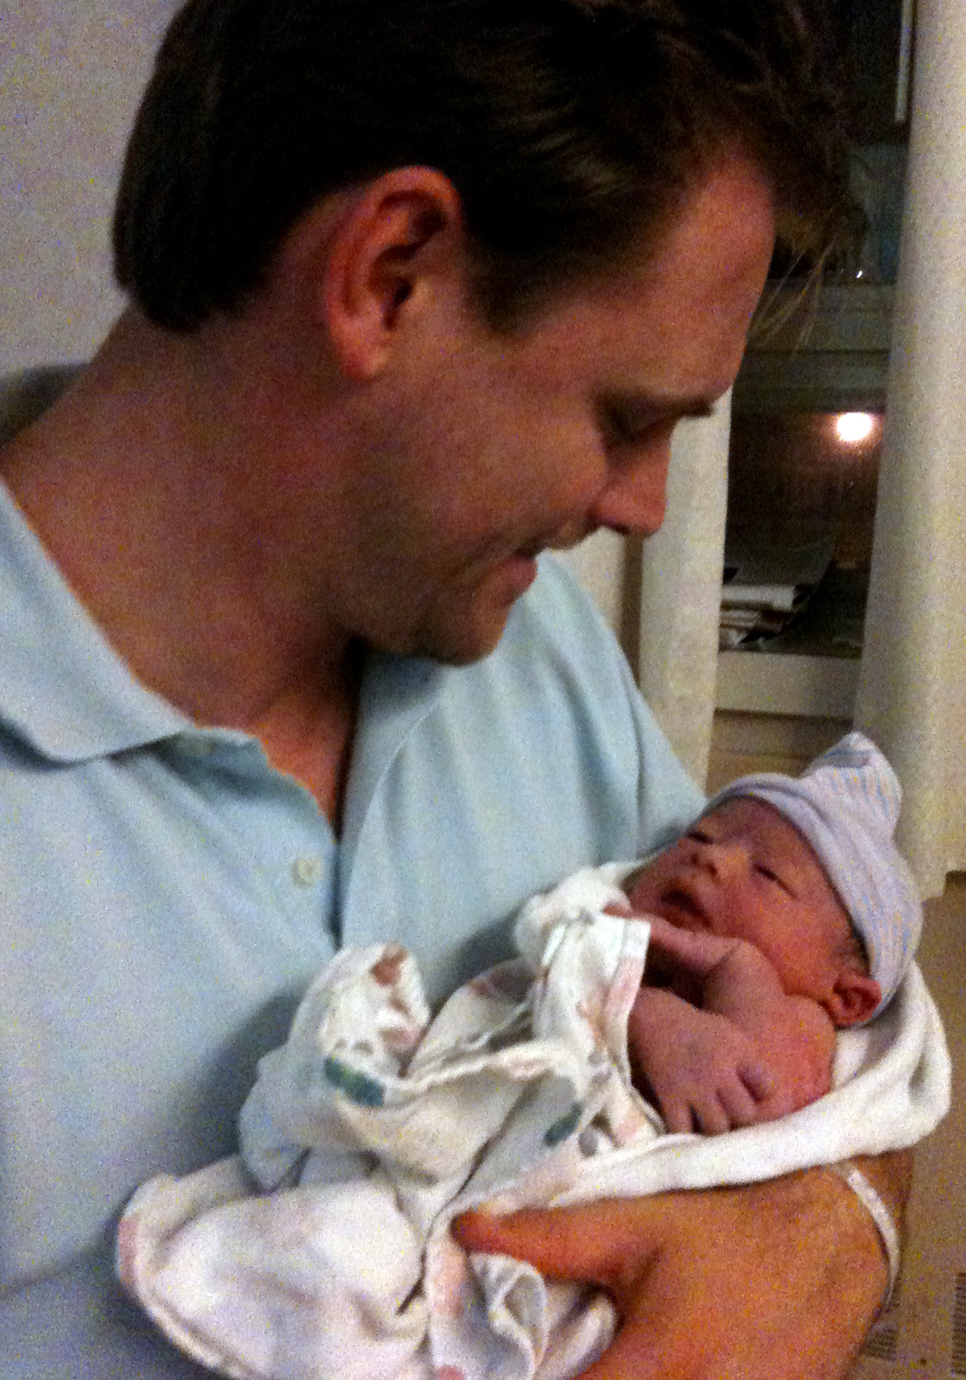 Kristian Aspelin cradles his newborn son, Johan.